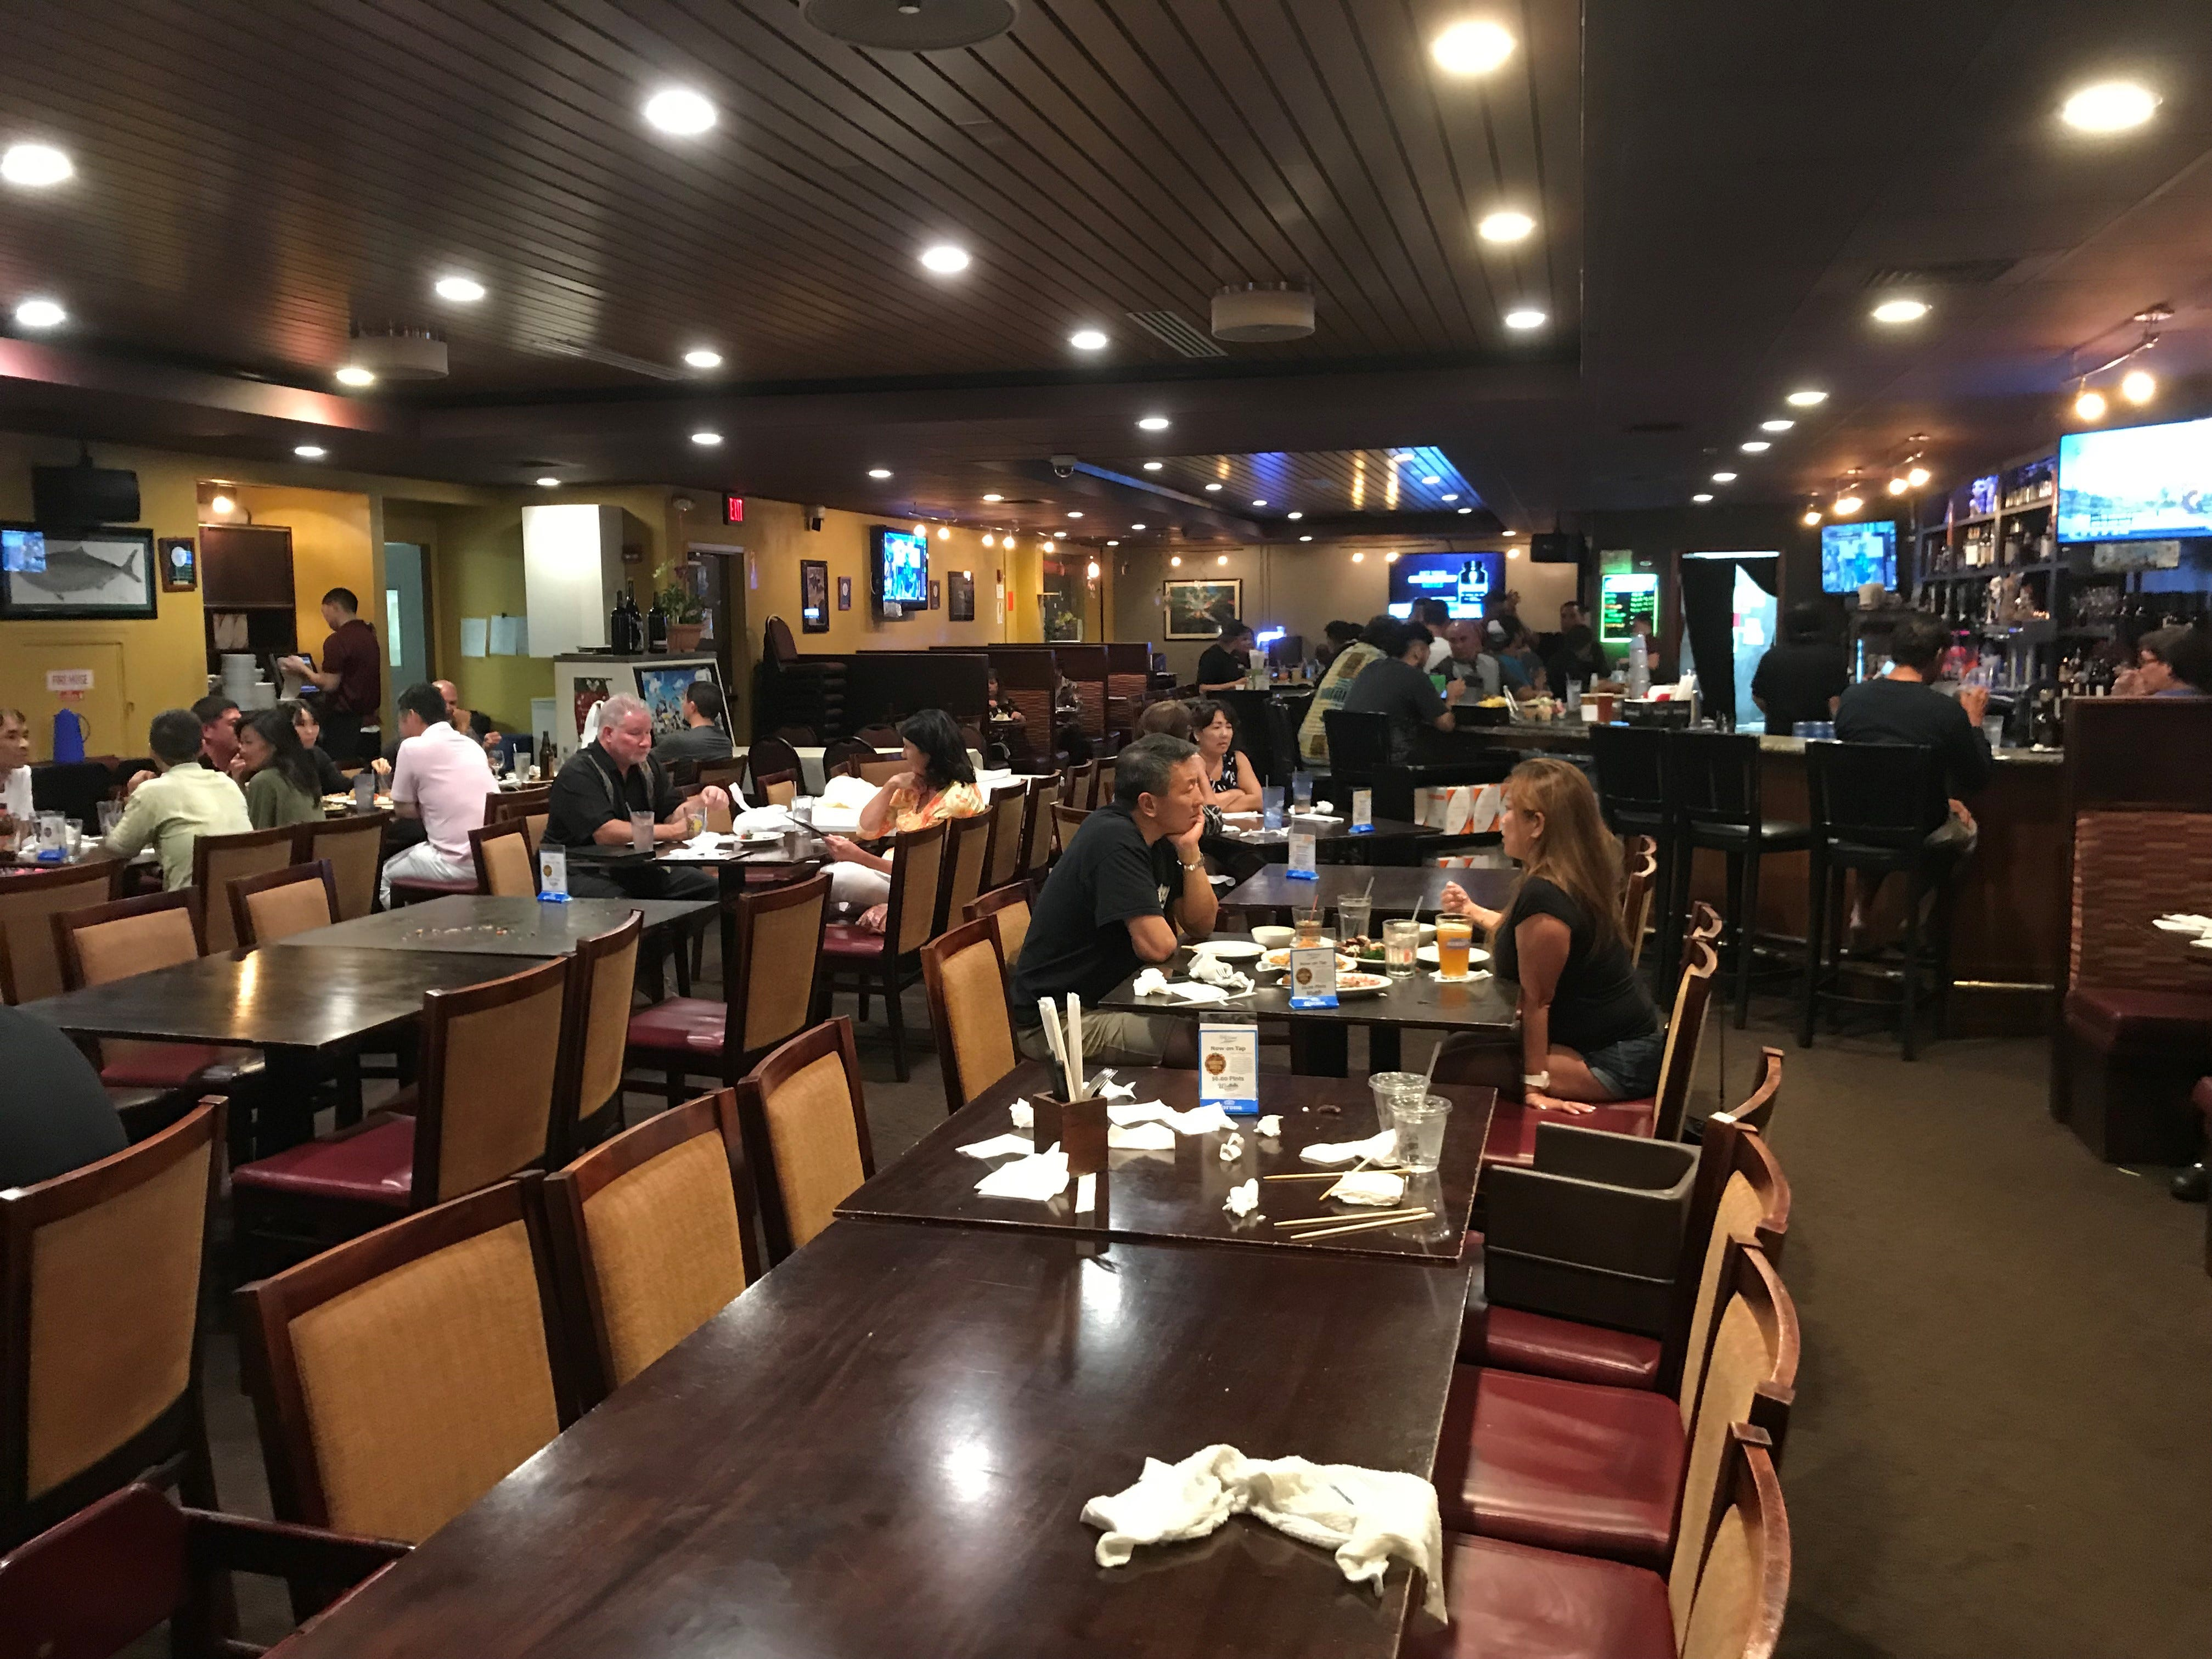 The second location opened in 2010 and is larger and more decoratively finished than the original. It seats close to 200.